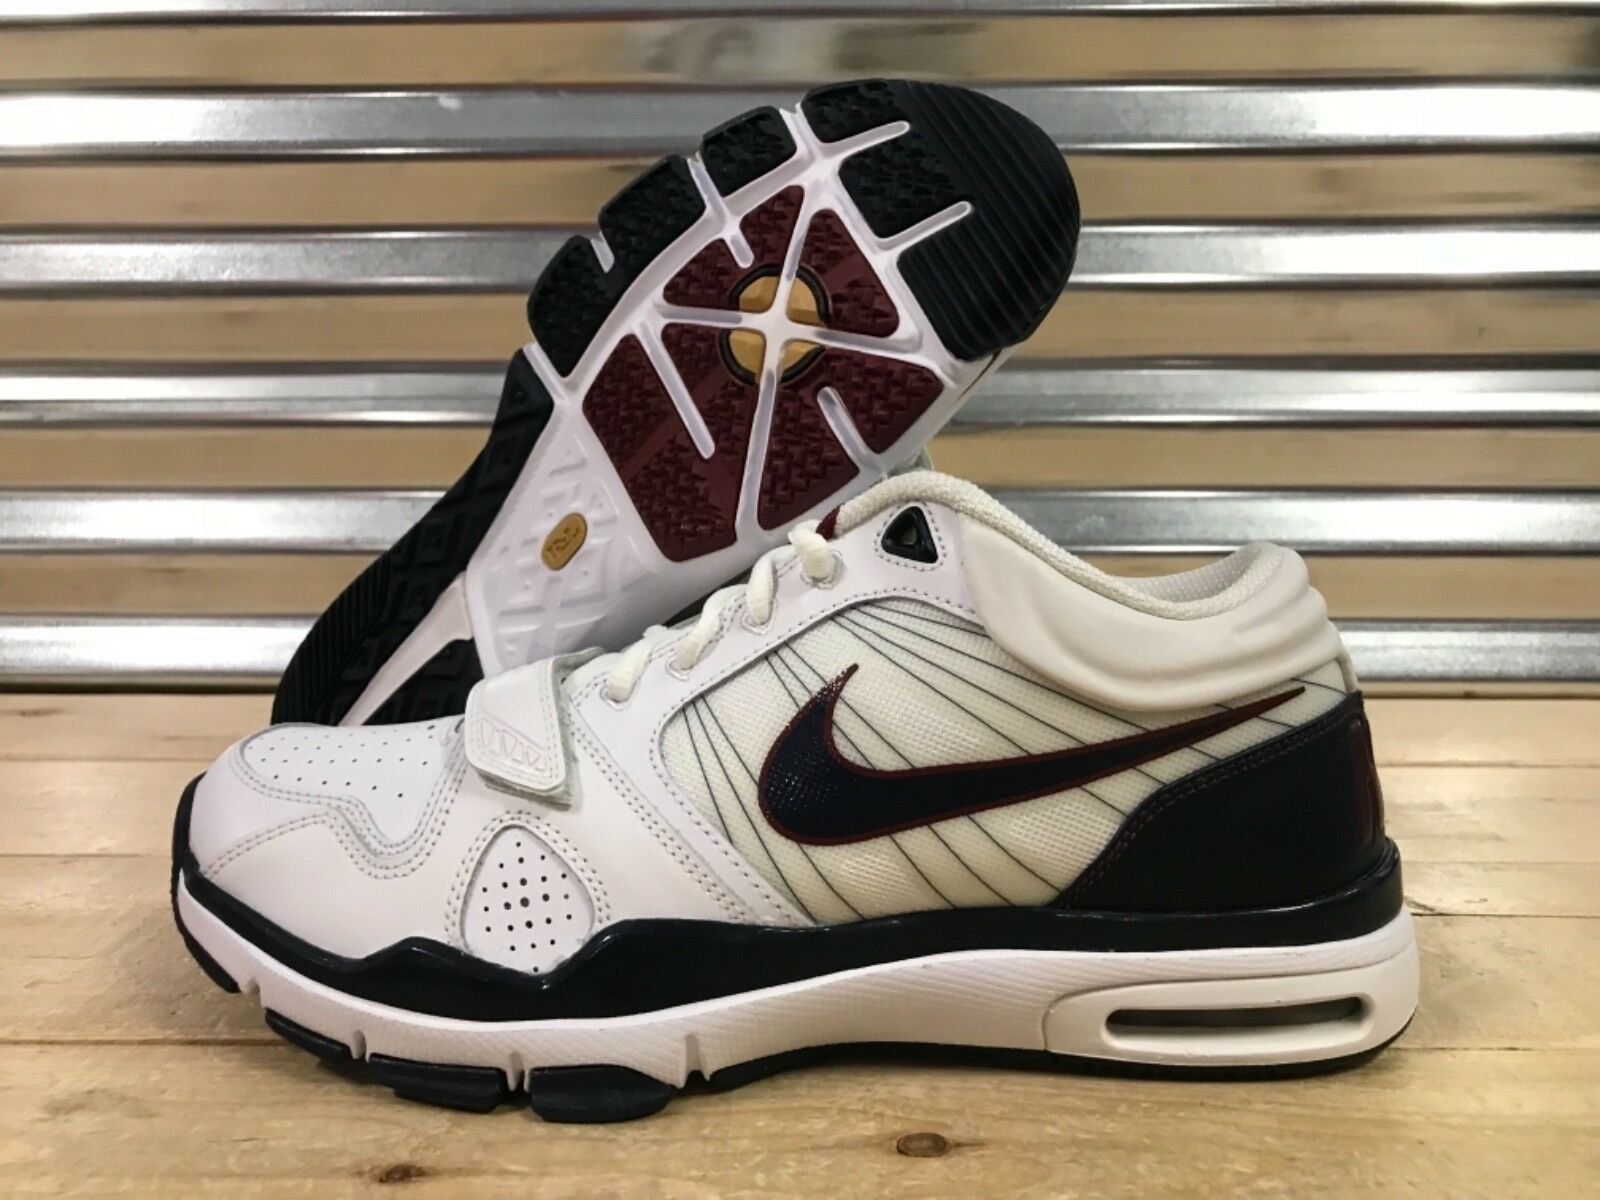 Nike Air Trainer 1.2 Mid Training shoes White bluee Red USA SZ 11 ( 407766-146 )